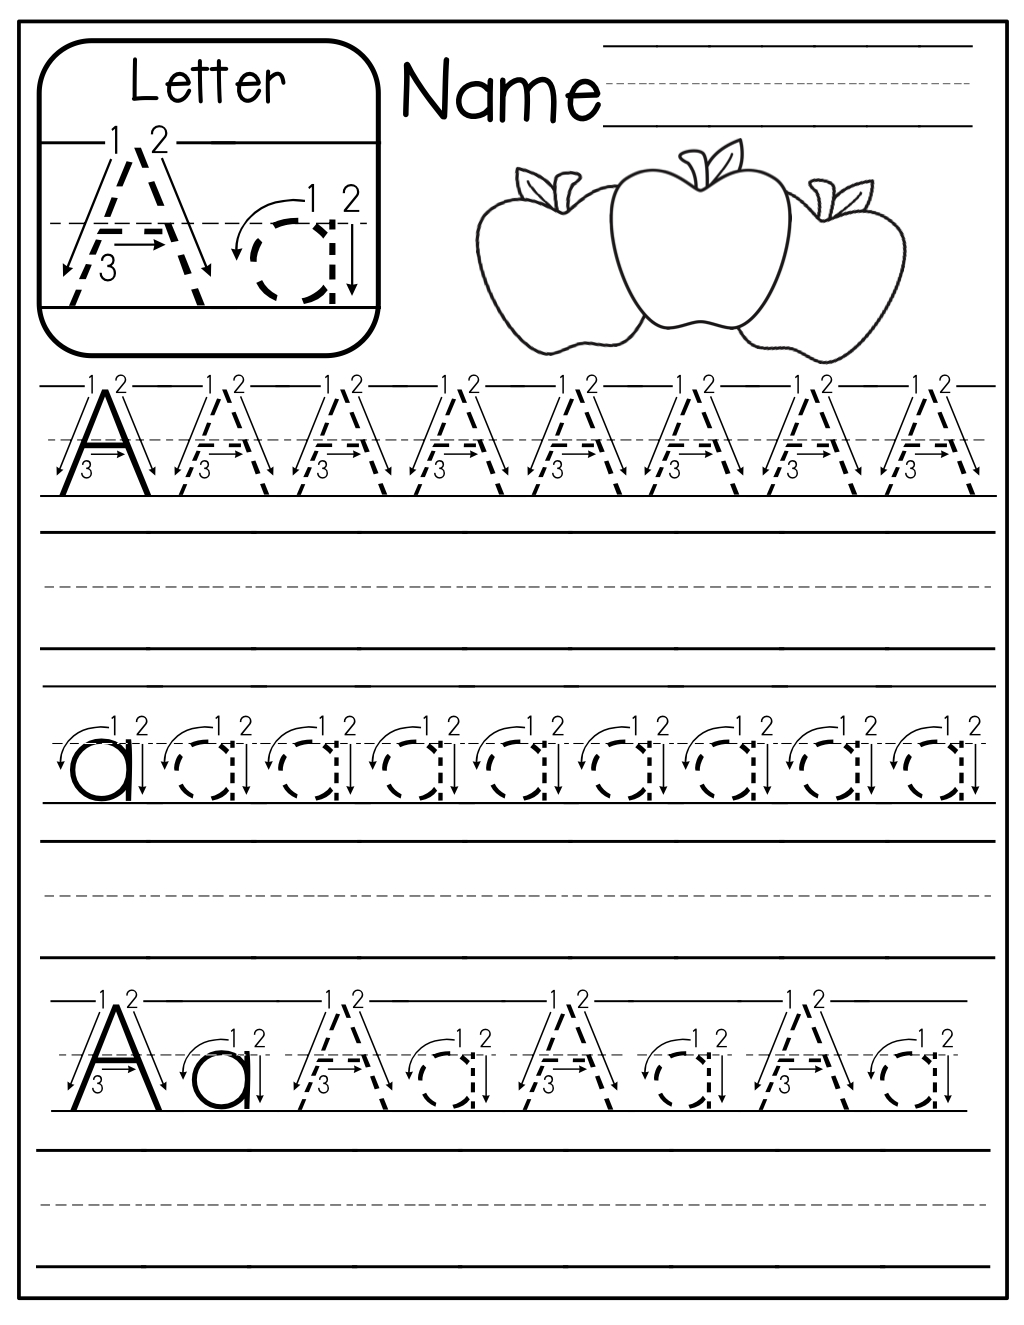 Free…free!! A-Z Handwriting Pages! Just Print Them Out regarding Free Tracing Letters Worksheet A-Z